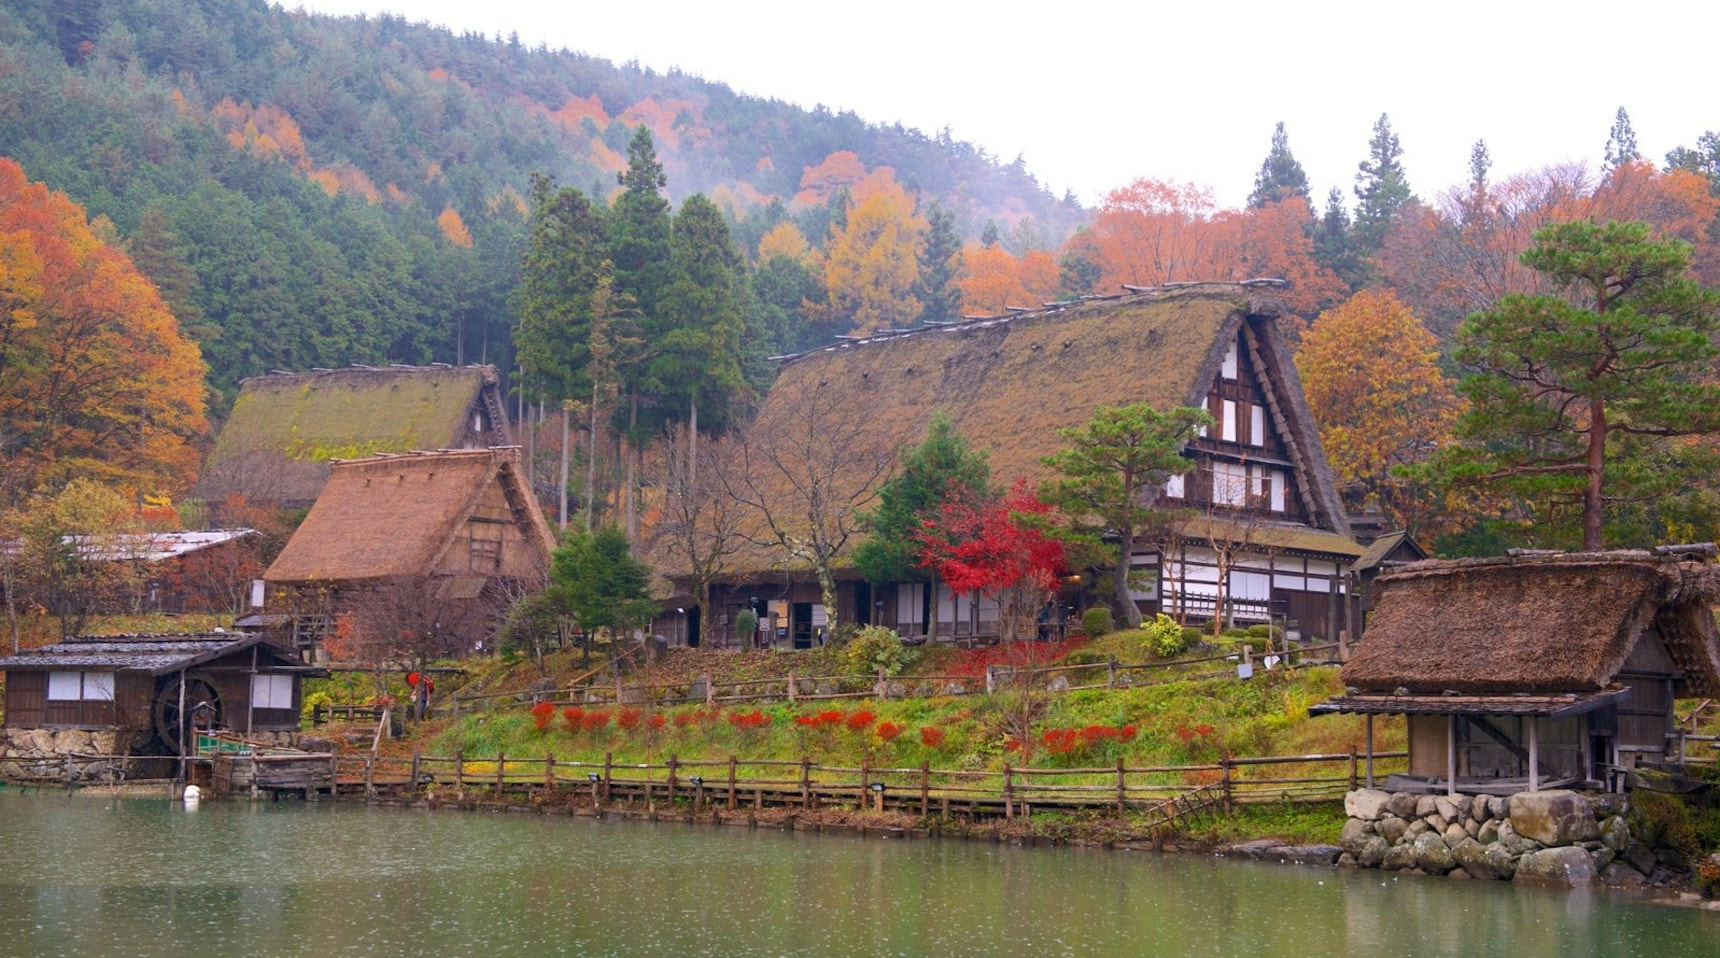 Top 4 Fall Foliage Spots around Takayama